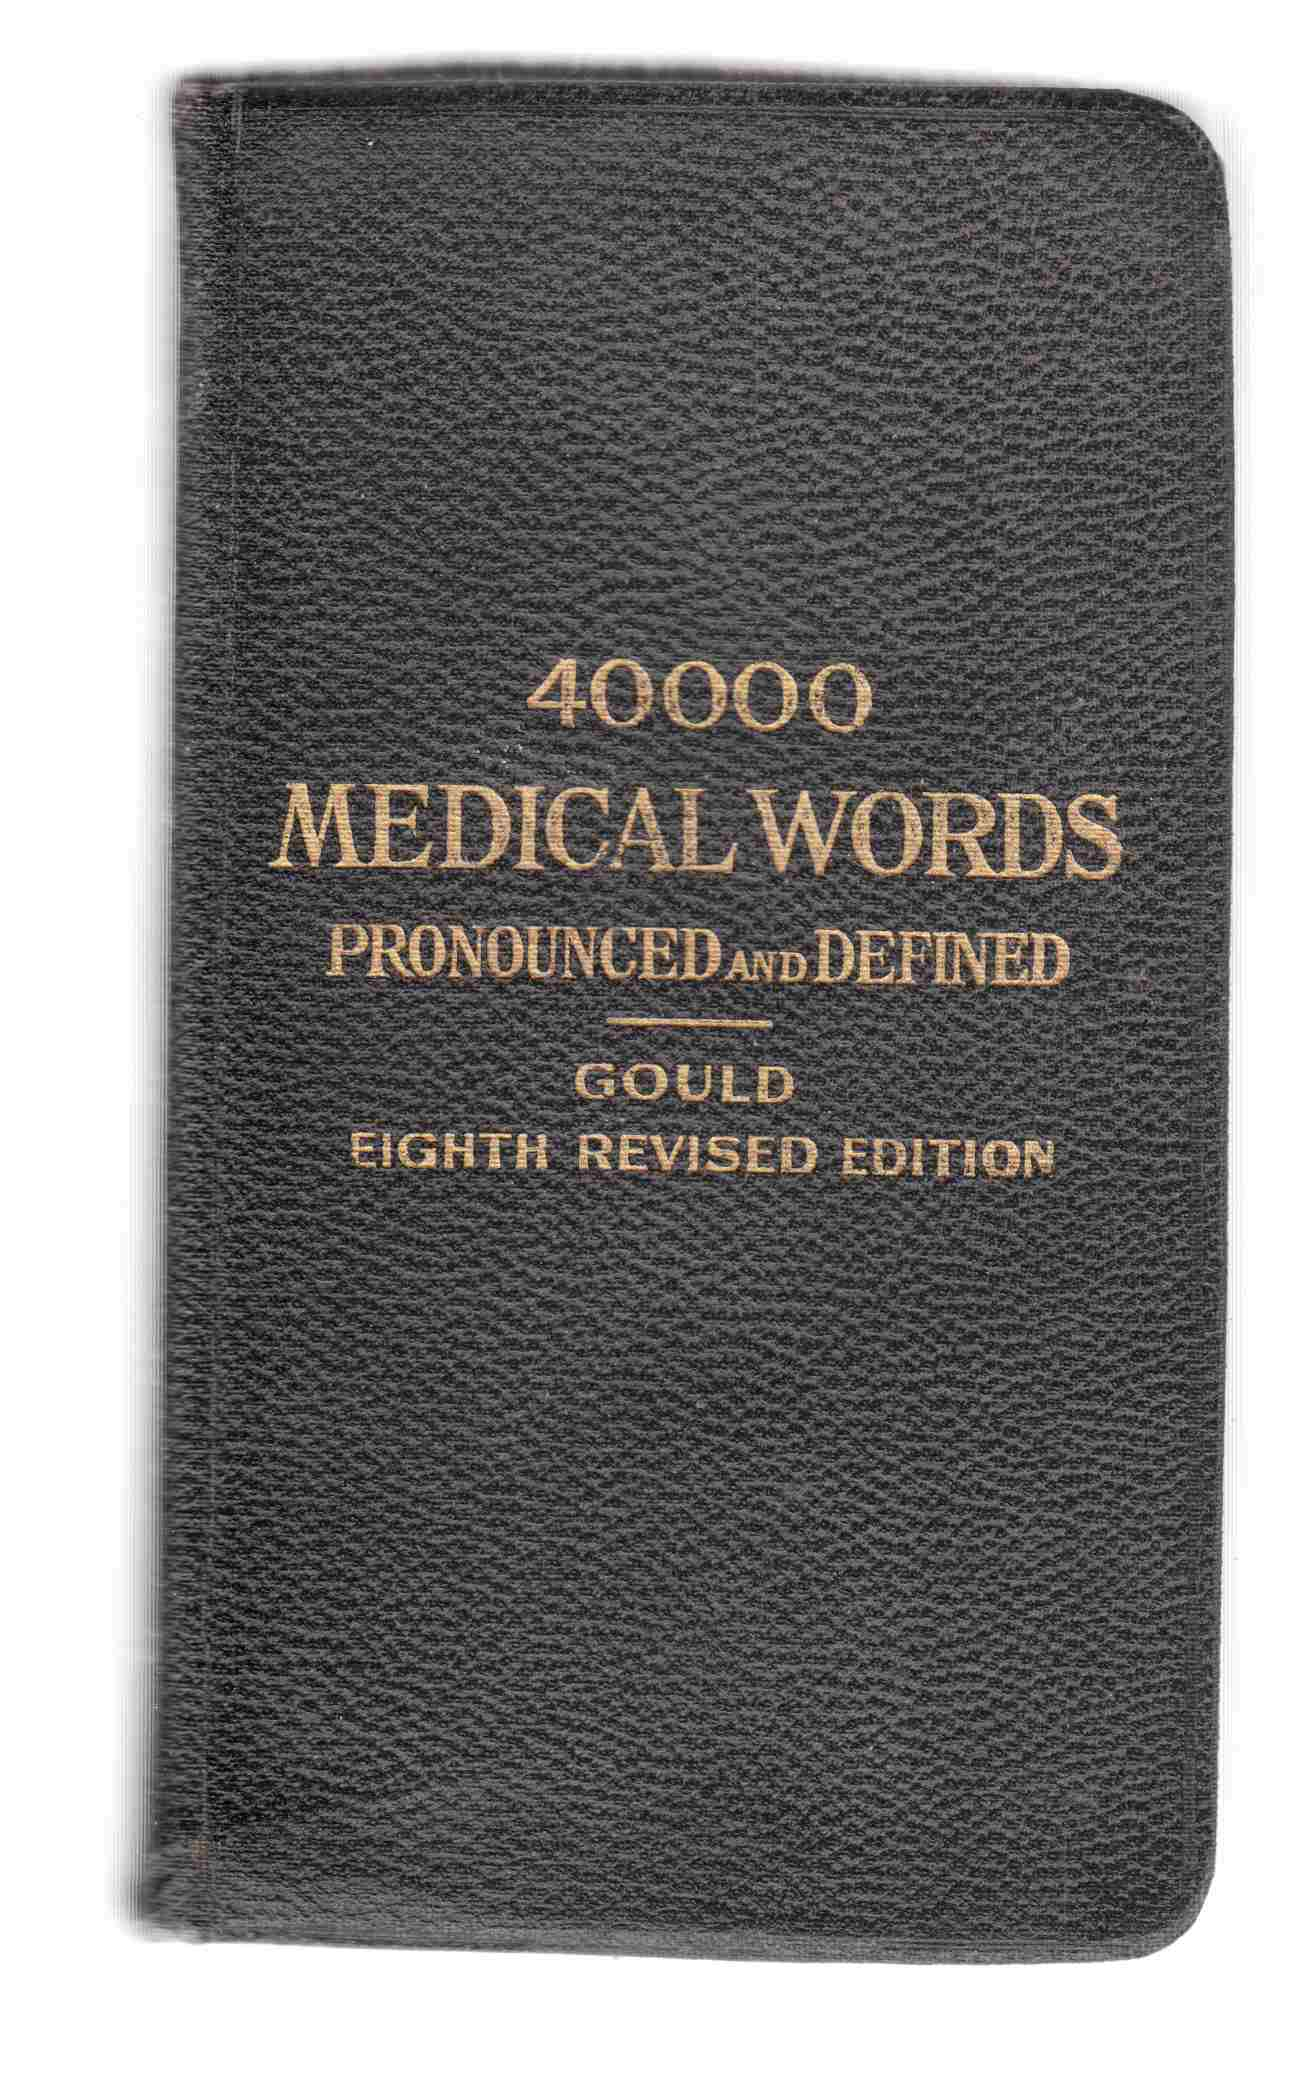 Image for Gould's Pocket Pronouncing Medical Dictionary  - Revised Eighth Edition - 40,000 Words